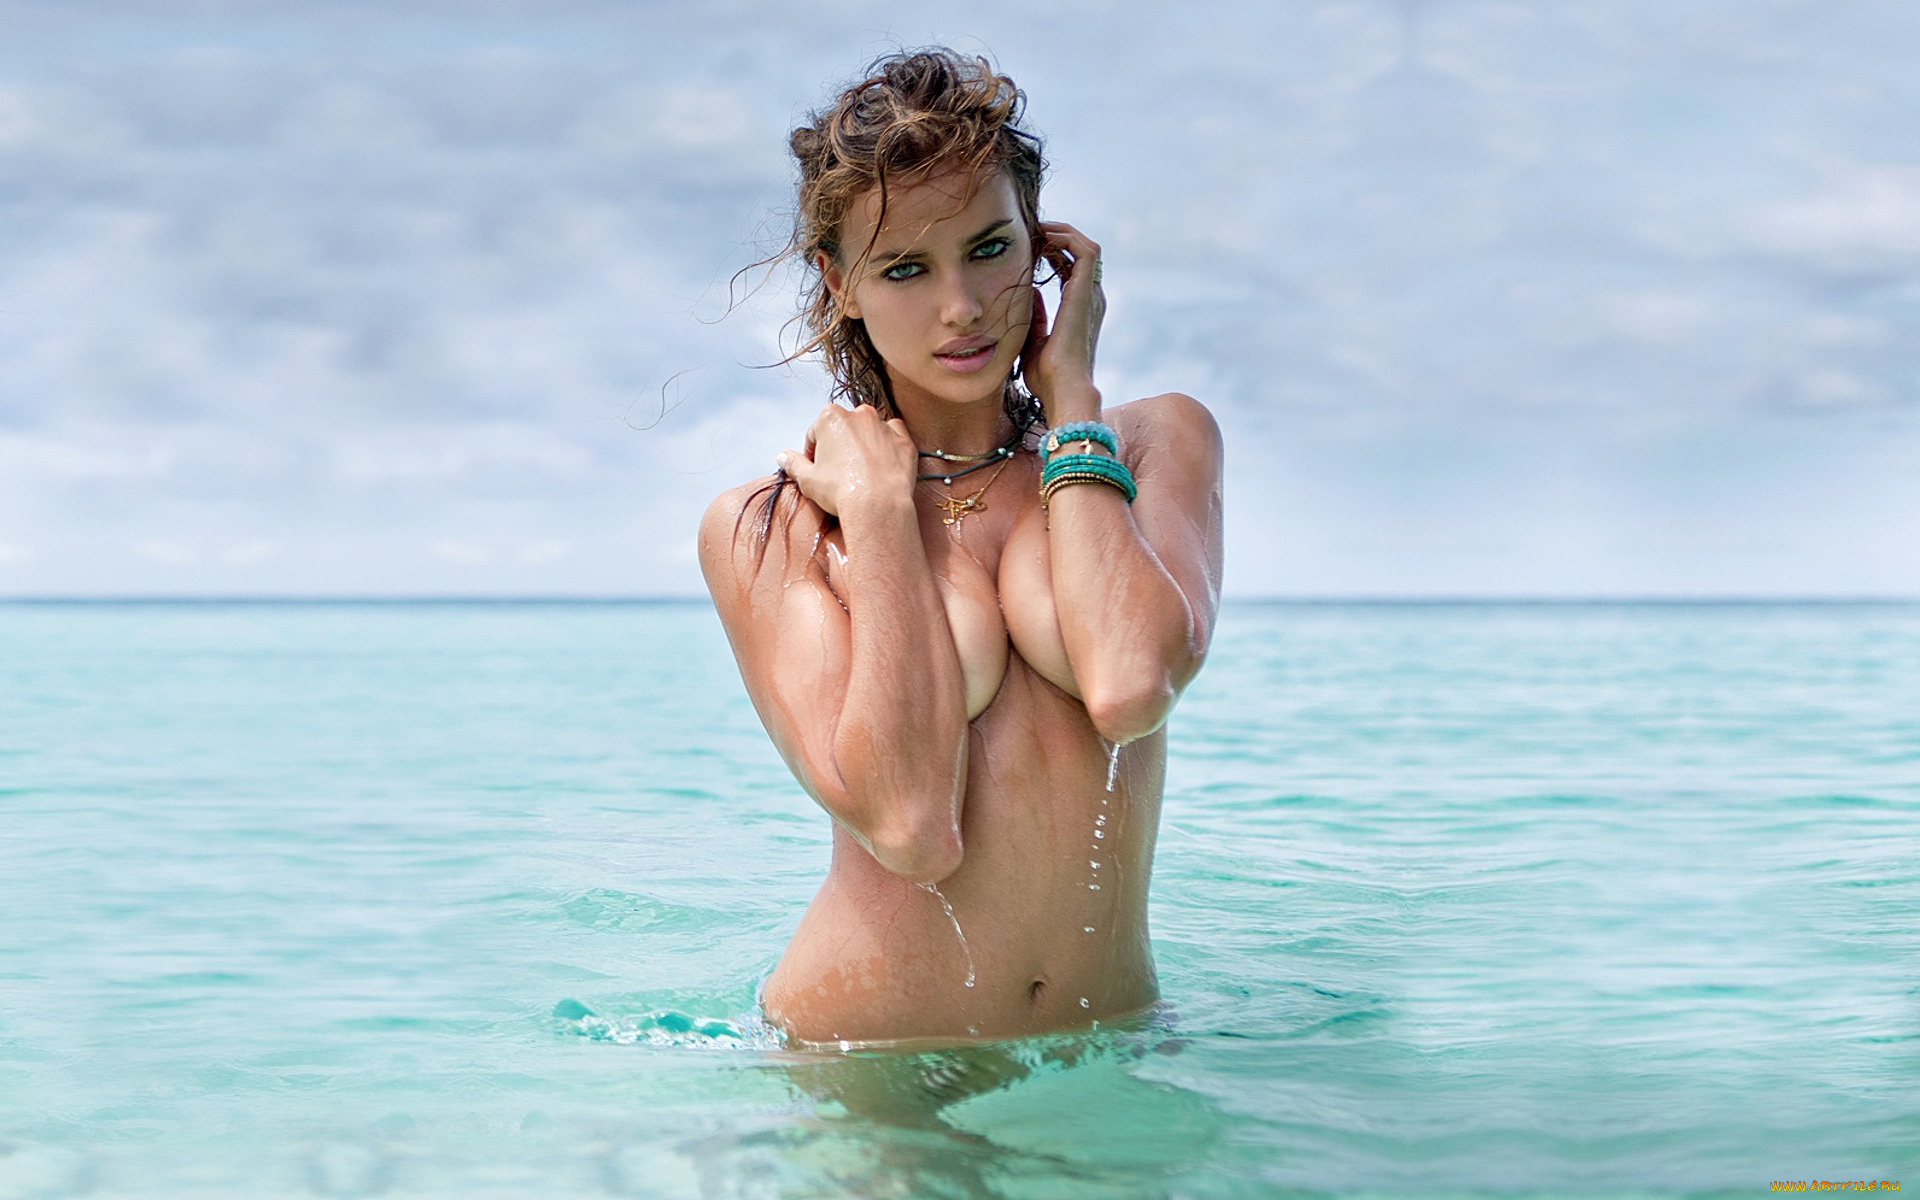 Sexy girls in water pic — 13